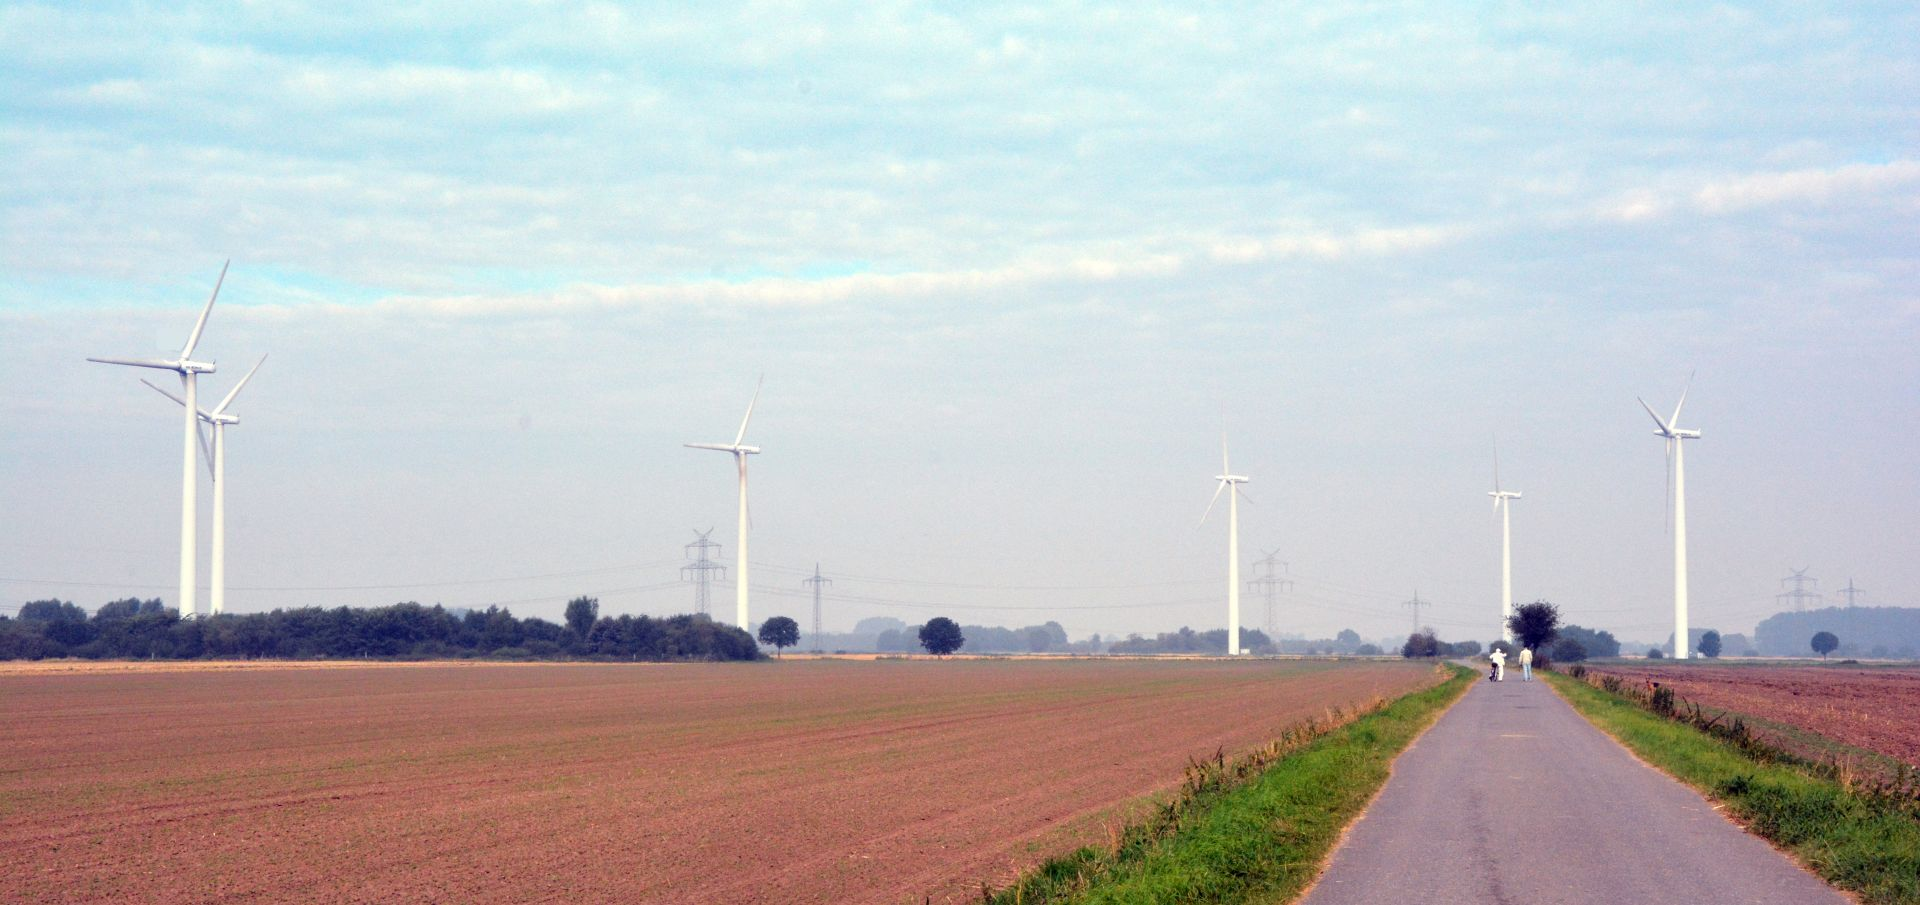 wind turbines in a field with a pathway and pedestrians